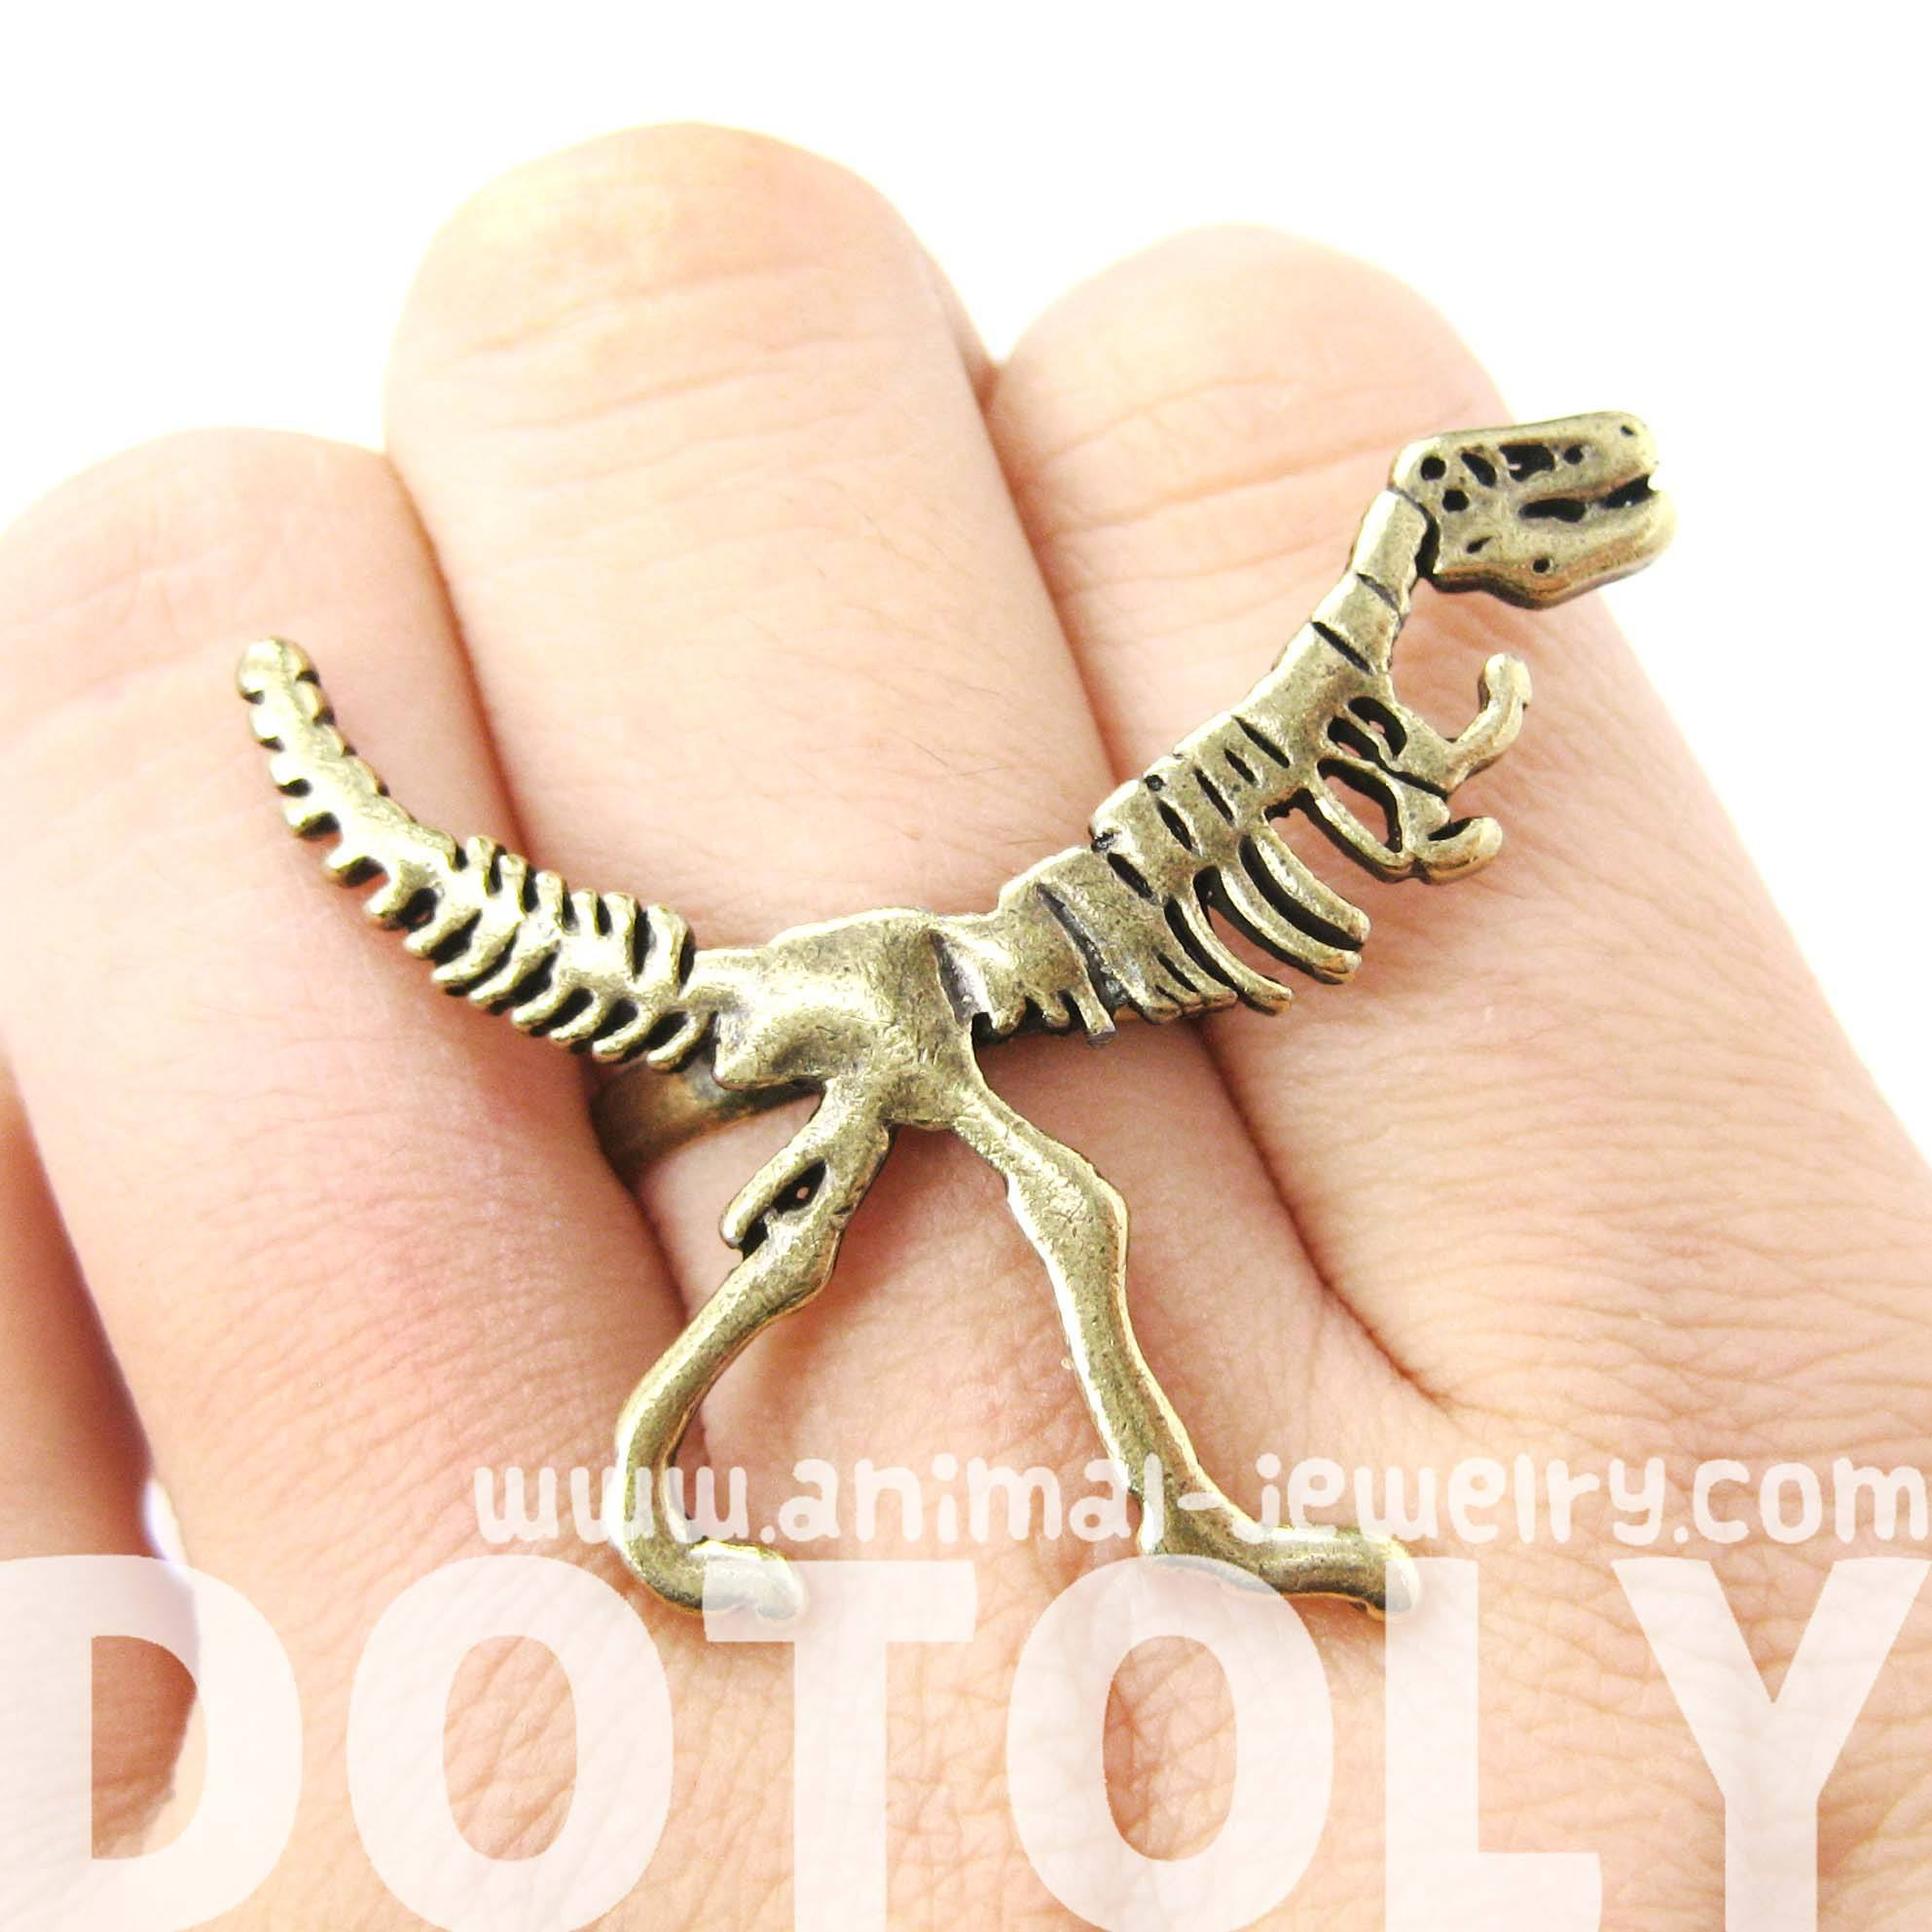 t-rex-dinosaur-fossil-skeleton-bones-adjustable-ring-in-brass